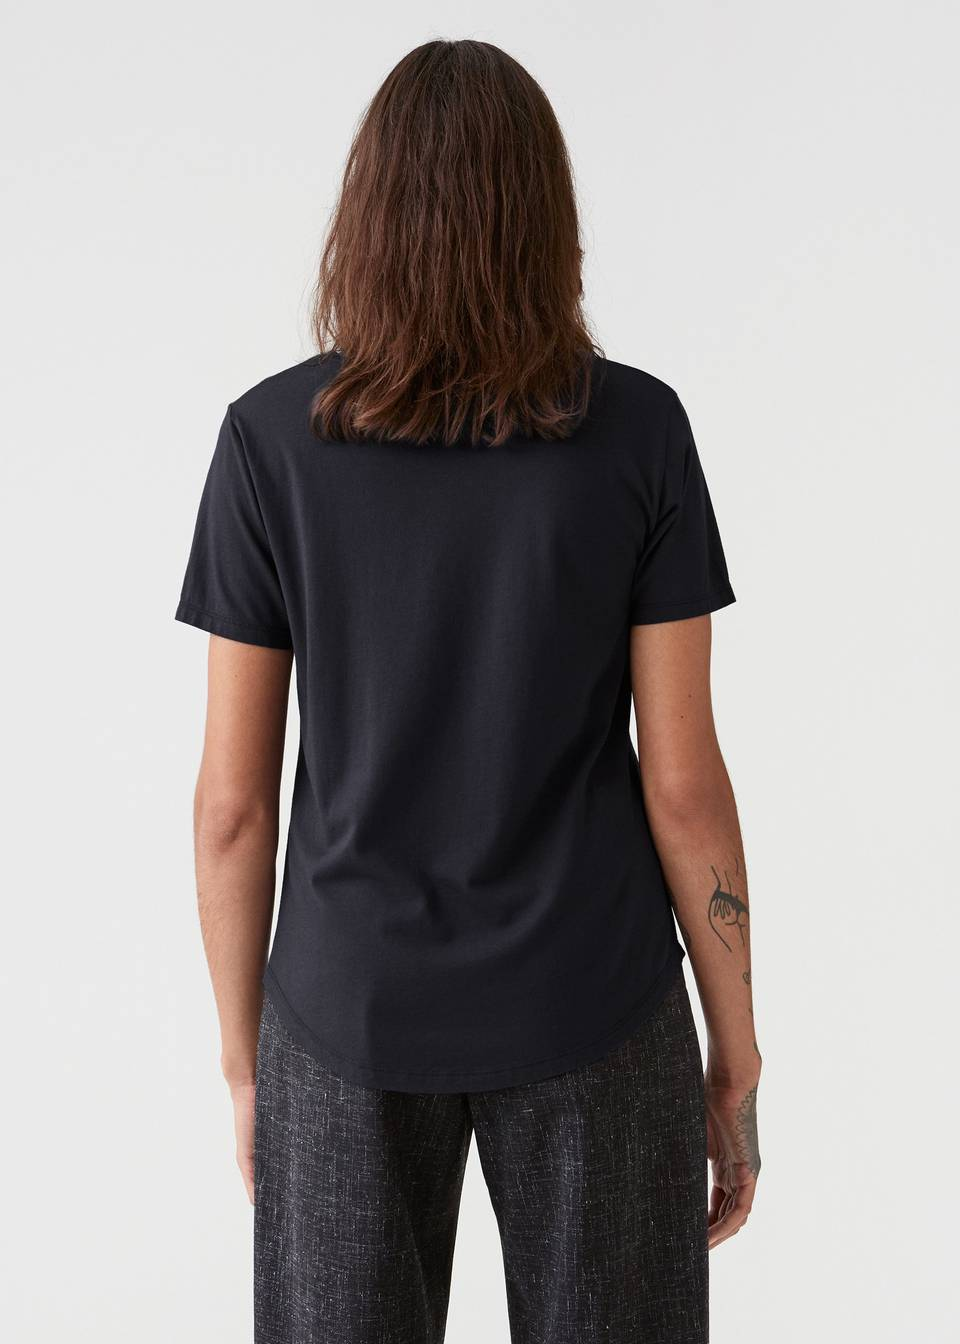 ONE TEE IN BLACK BY HOPE